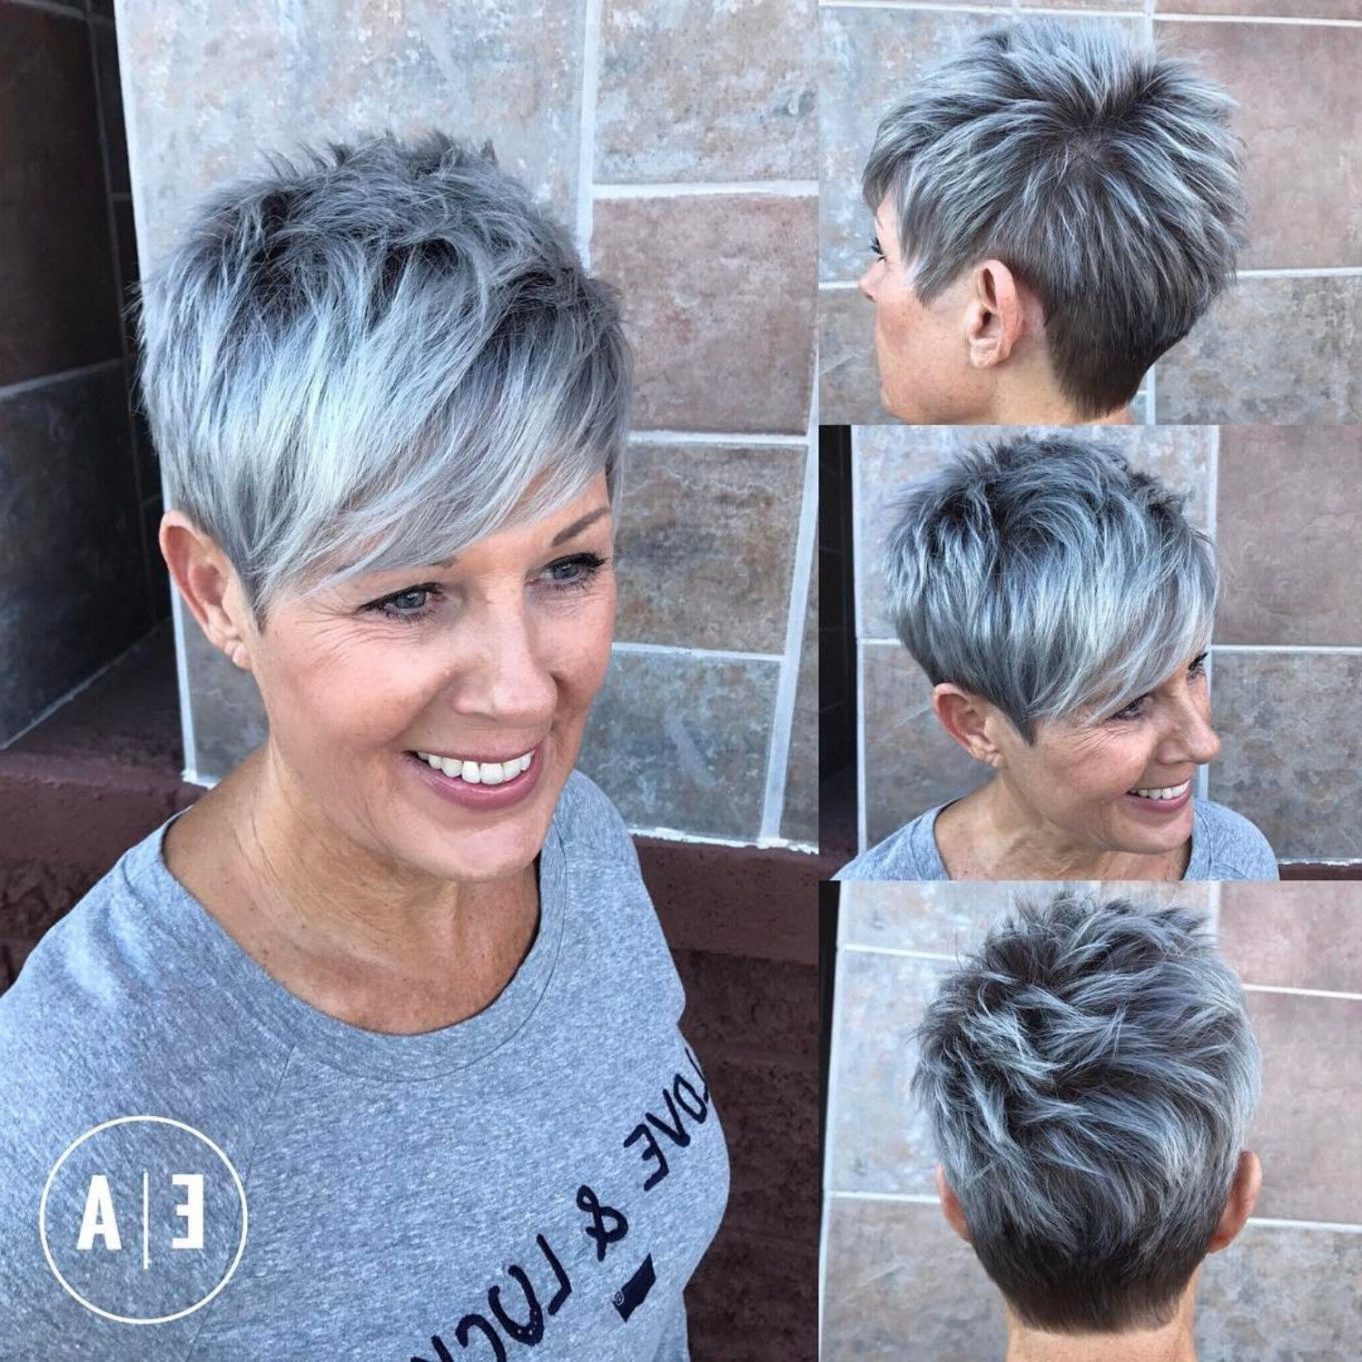 90 Classy And Simple Short Hairstyles For Women Over 50 In 2018 Regarding Spiky Gray Pixie Haircuts (Gallery 1 of 20)